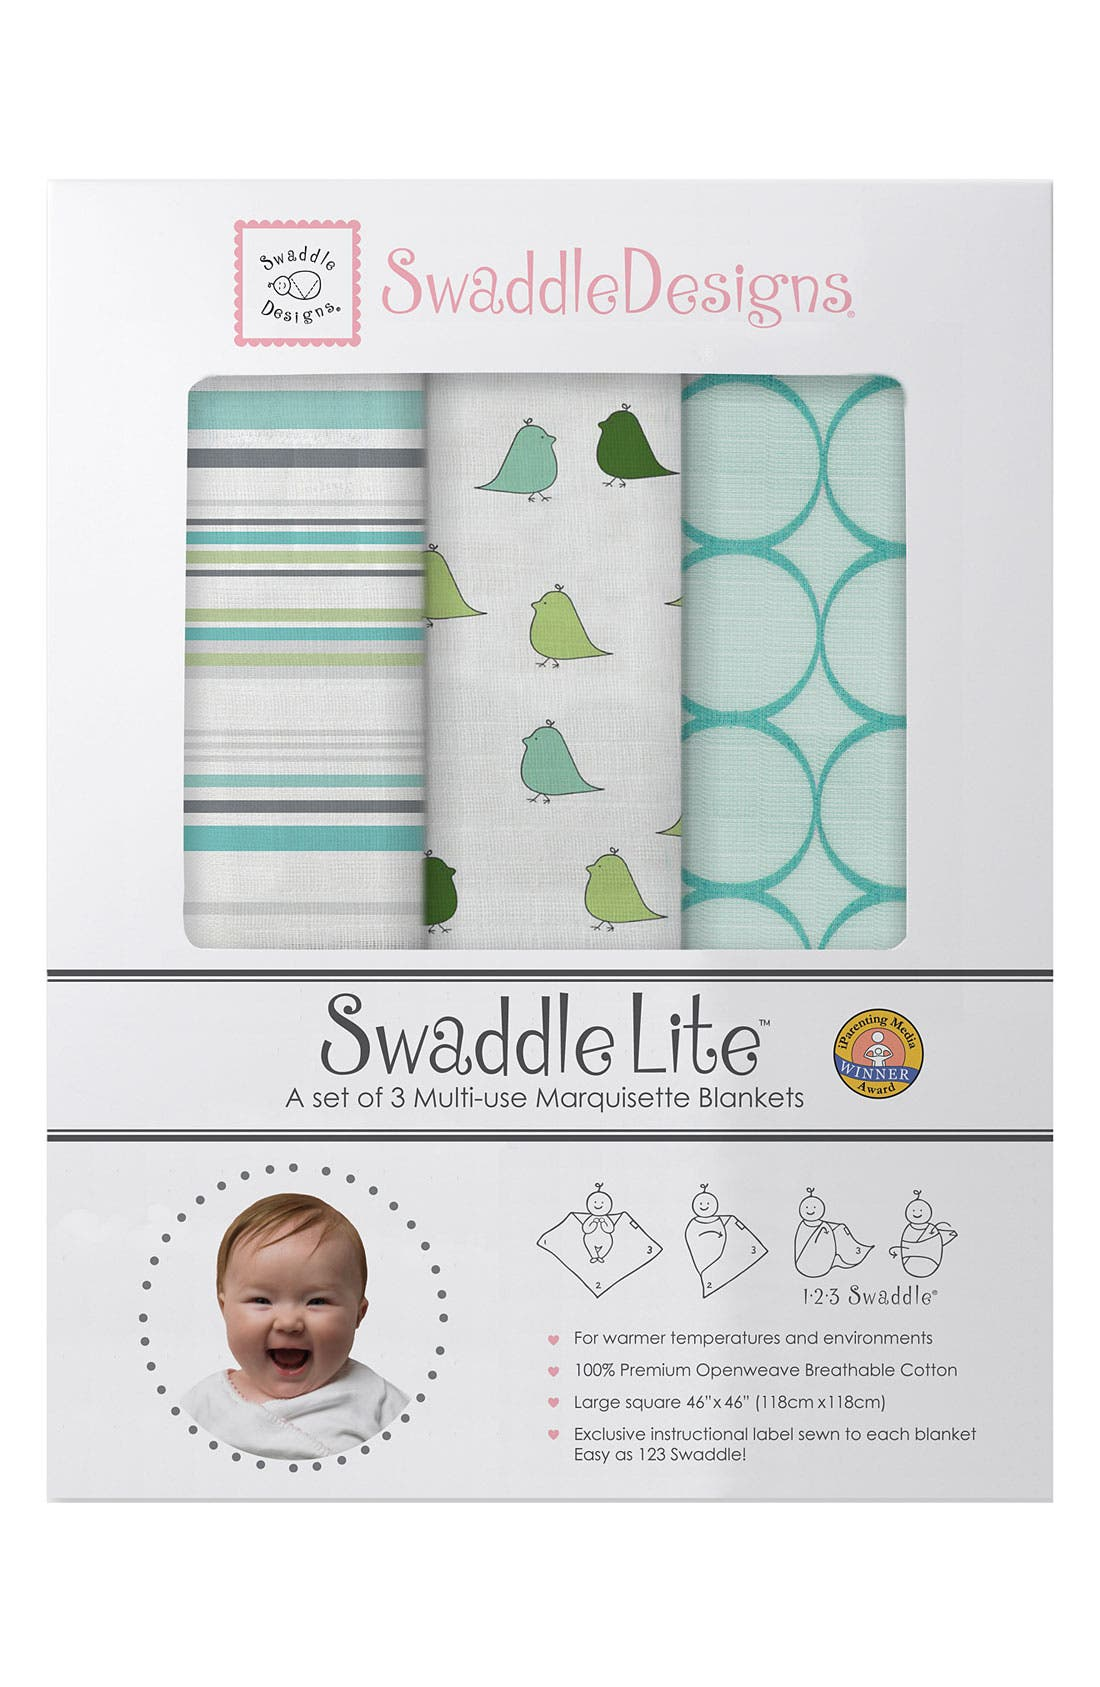 Alternate Image 1 Selected - Swaddle Designs 'Swaddle Lite' Marquisette Blanket (Set of 3)